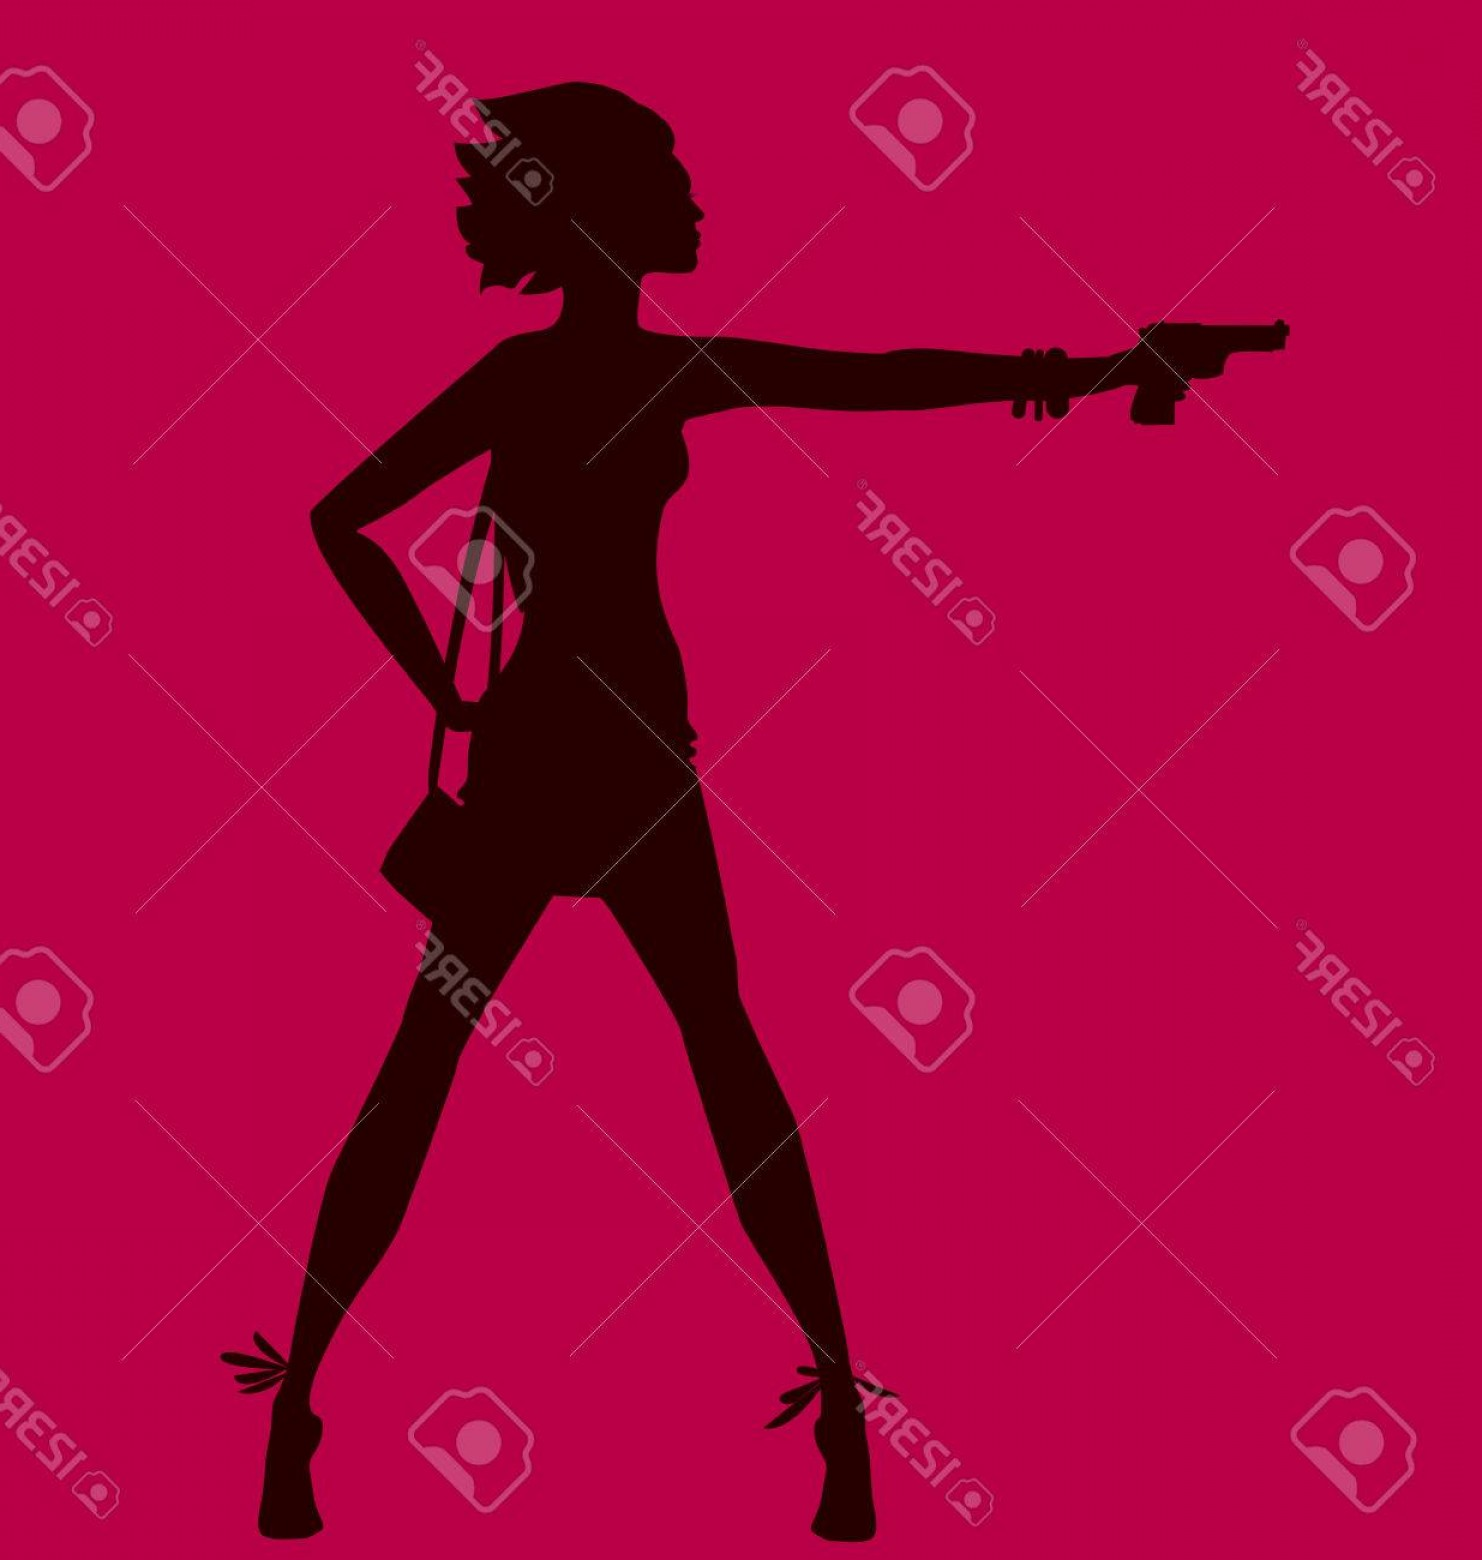 Bond Girls Vector: Photostock Vector Vector Illustration Of Woman Silhouette With Gun Spy Agent Concept Fashion Girl Figure